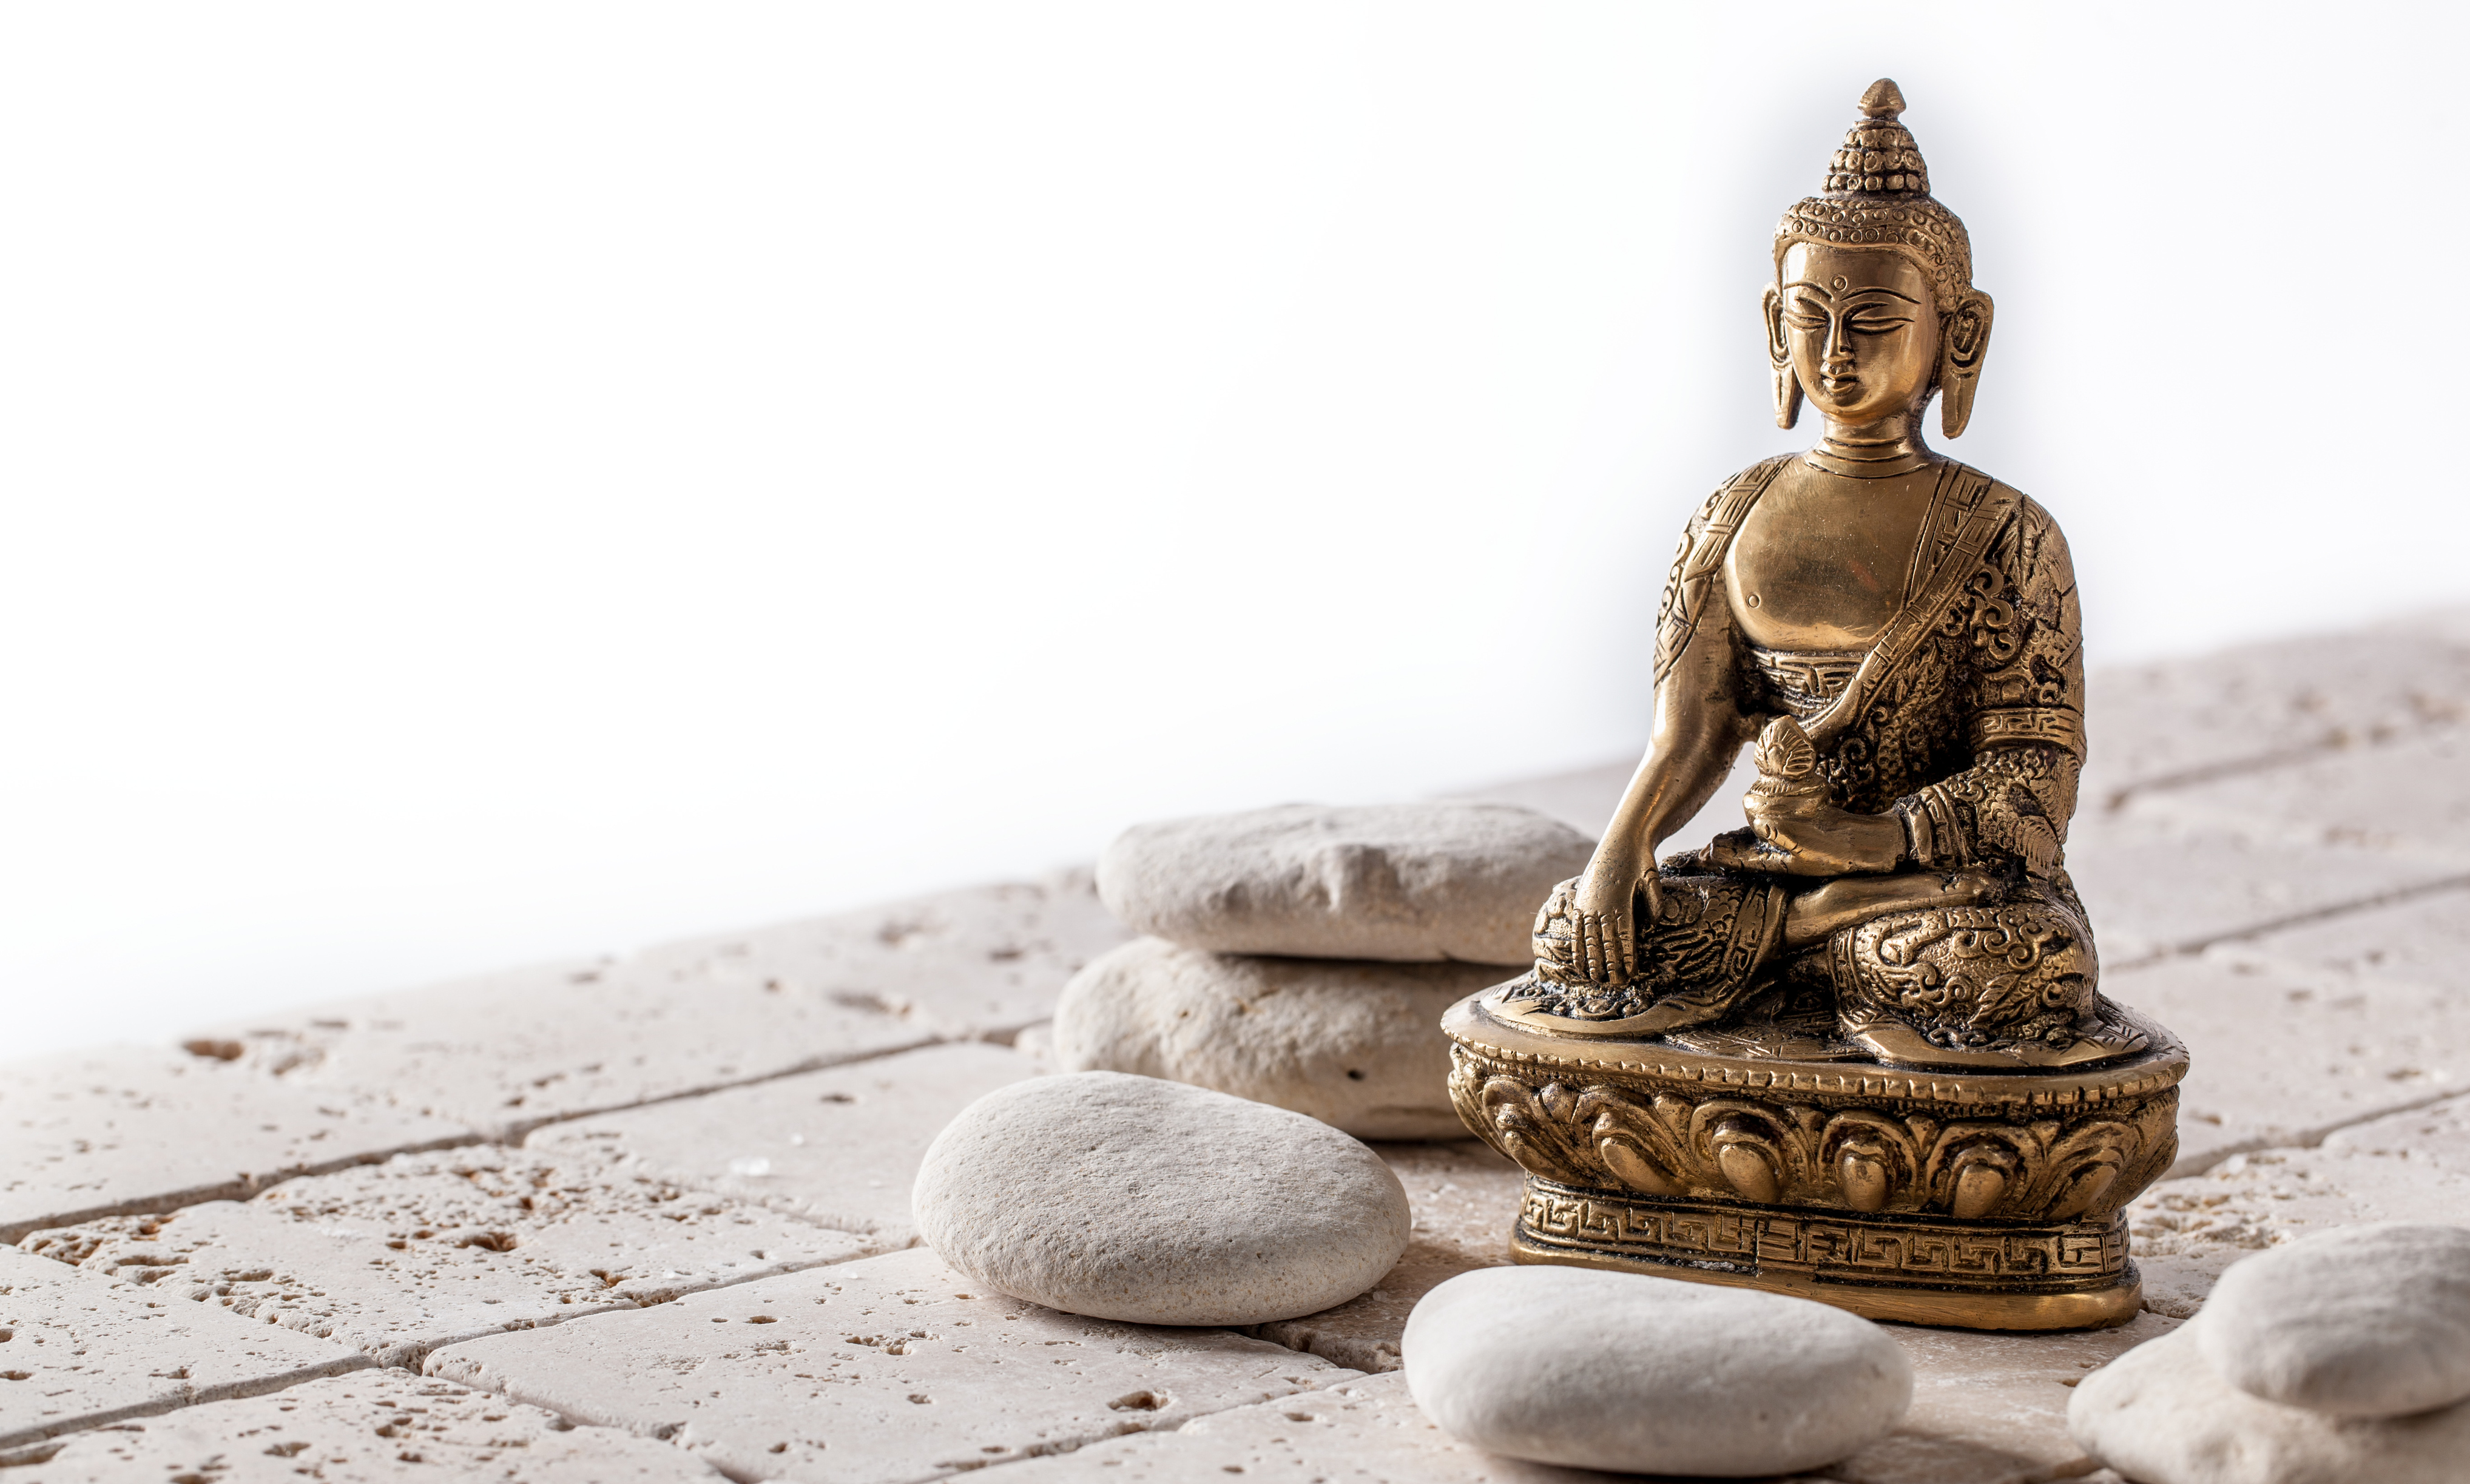 Buddhism and mindfulness symbol for meditation and wellbeing over pure pebbles and clean limestone, copy space